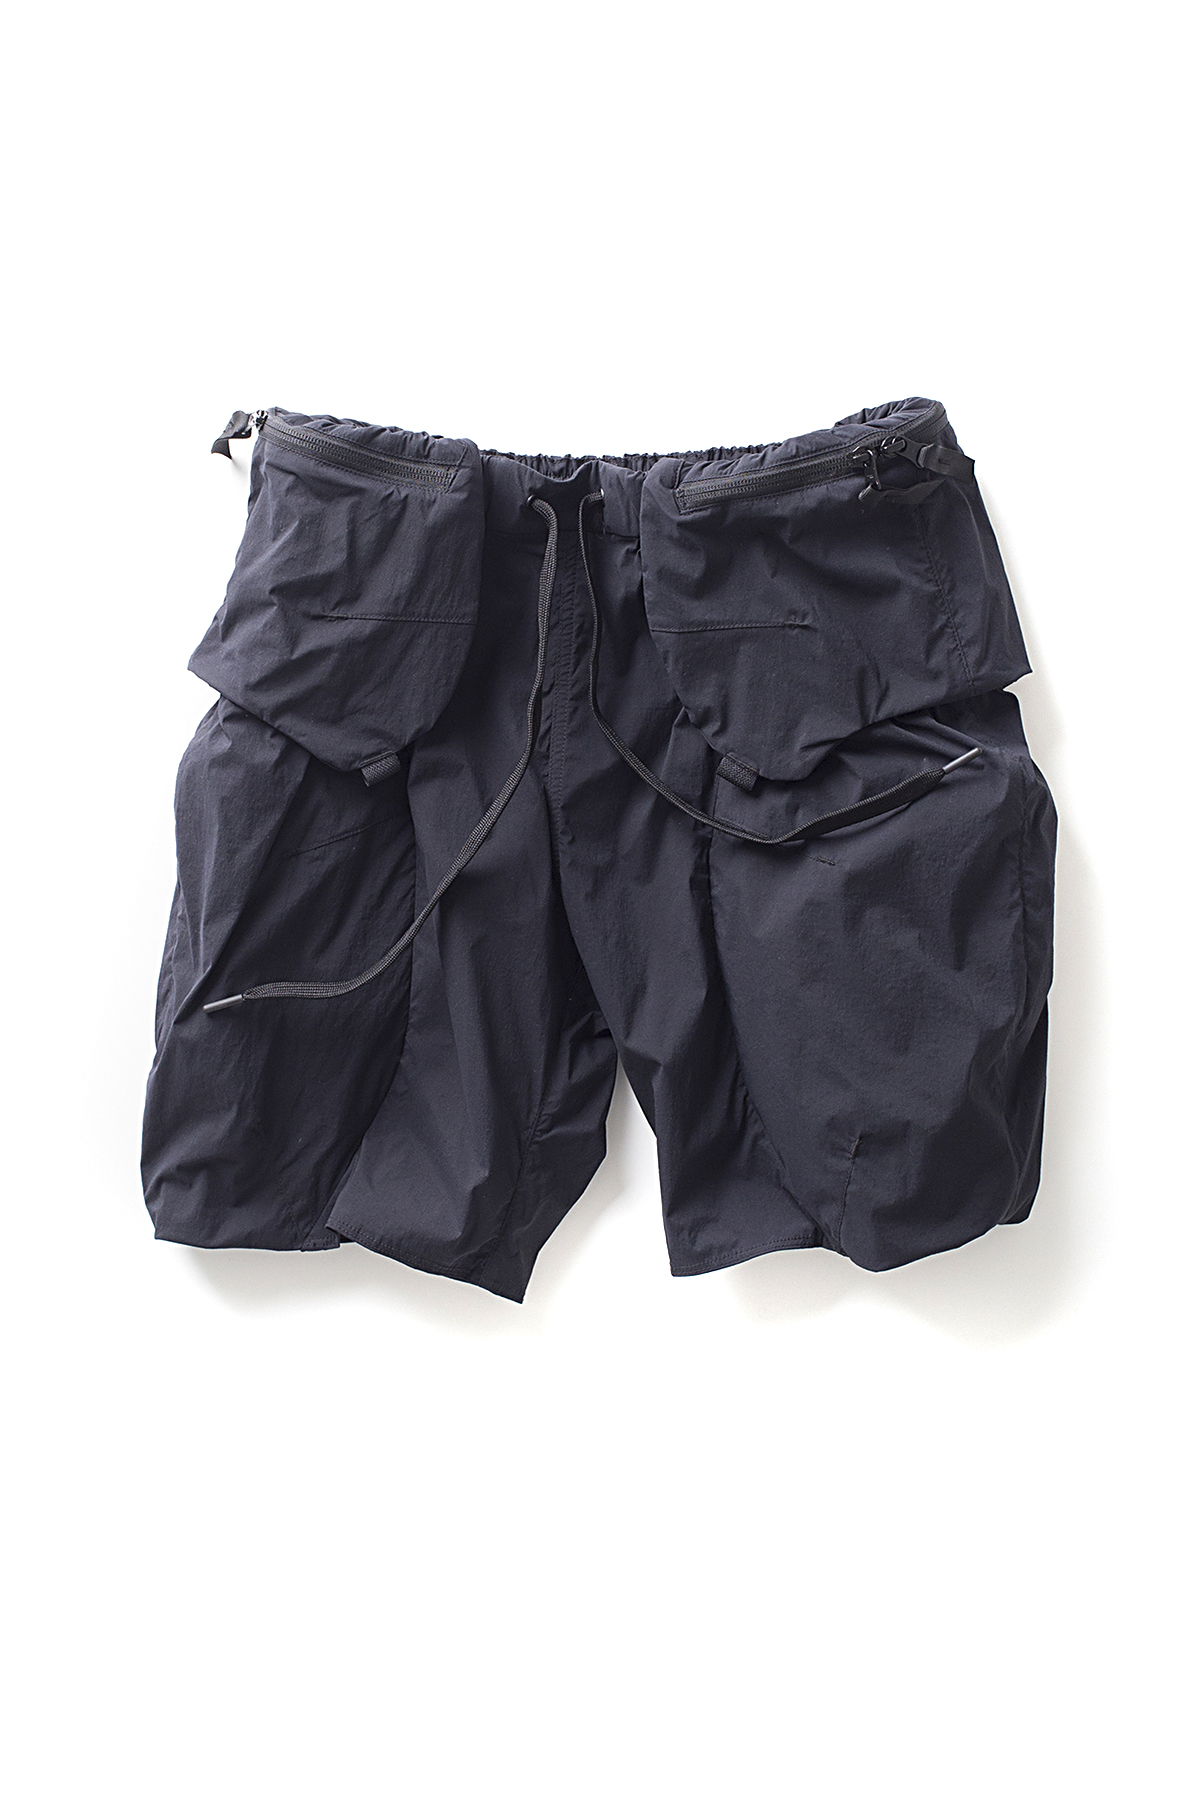 alk phenix : Zak Shorts (Black)